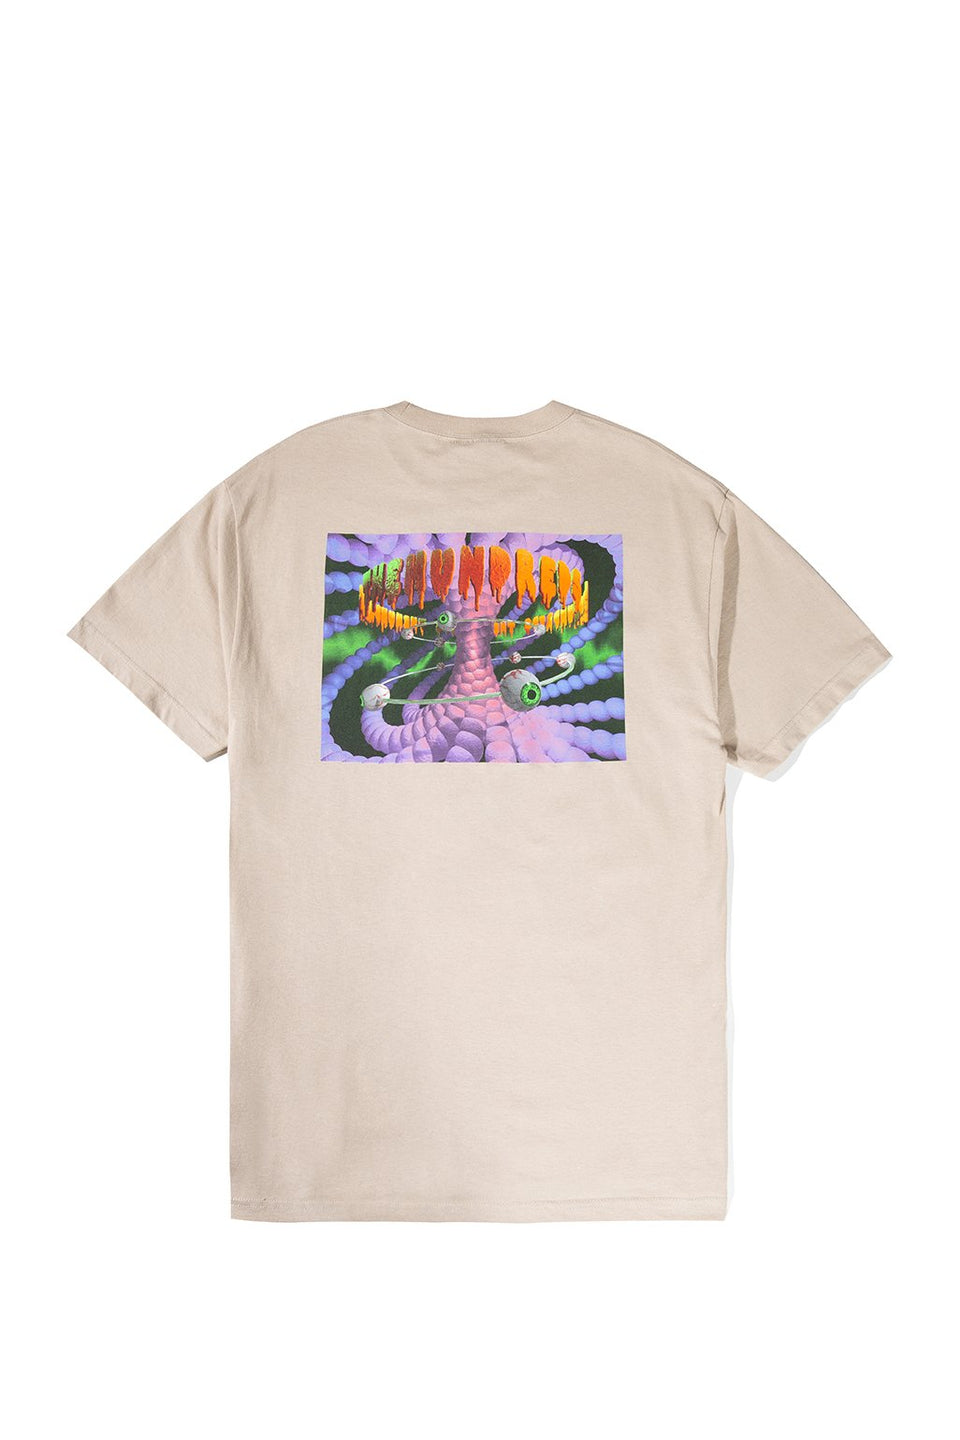 Eye Daze T-Shirt